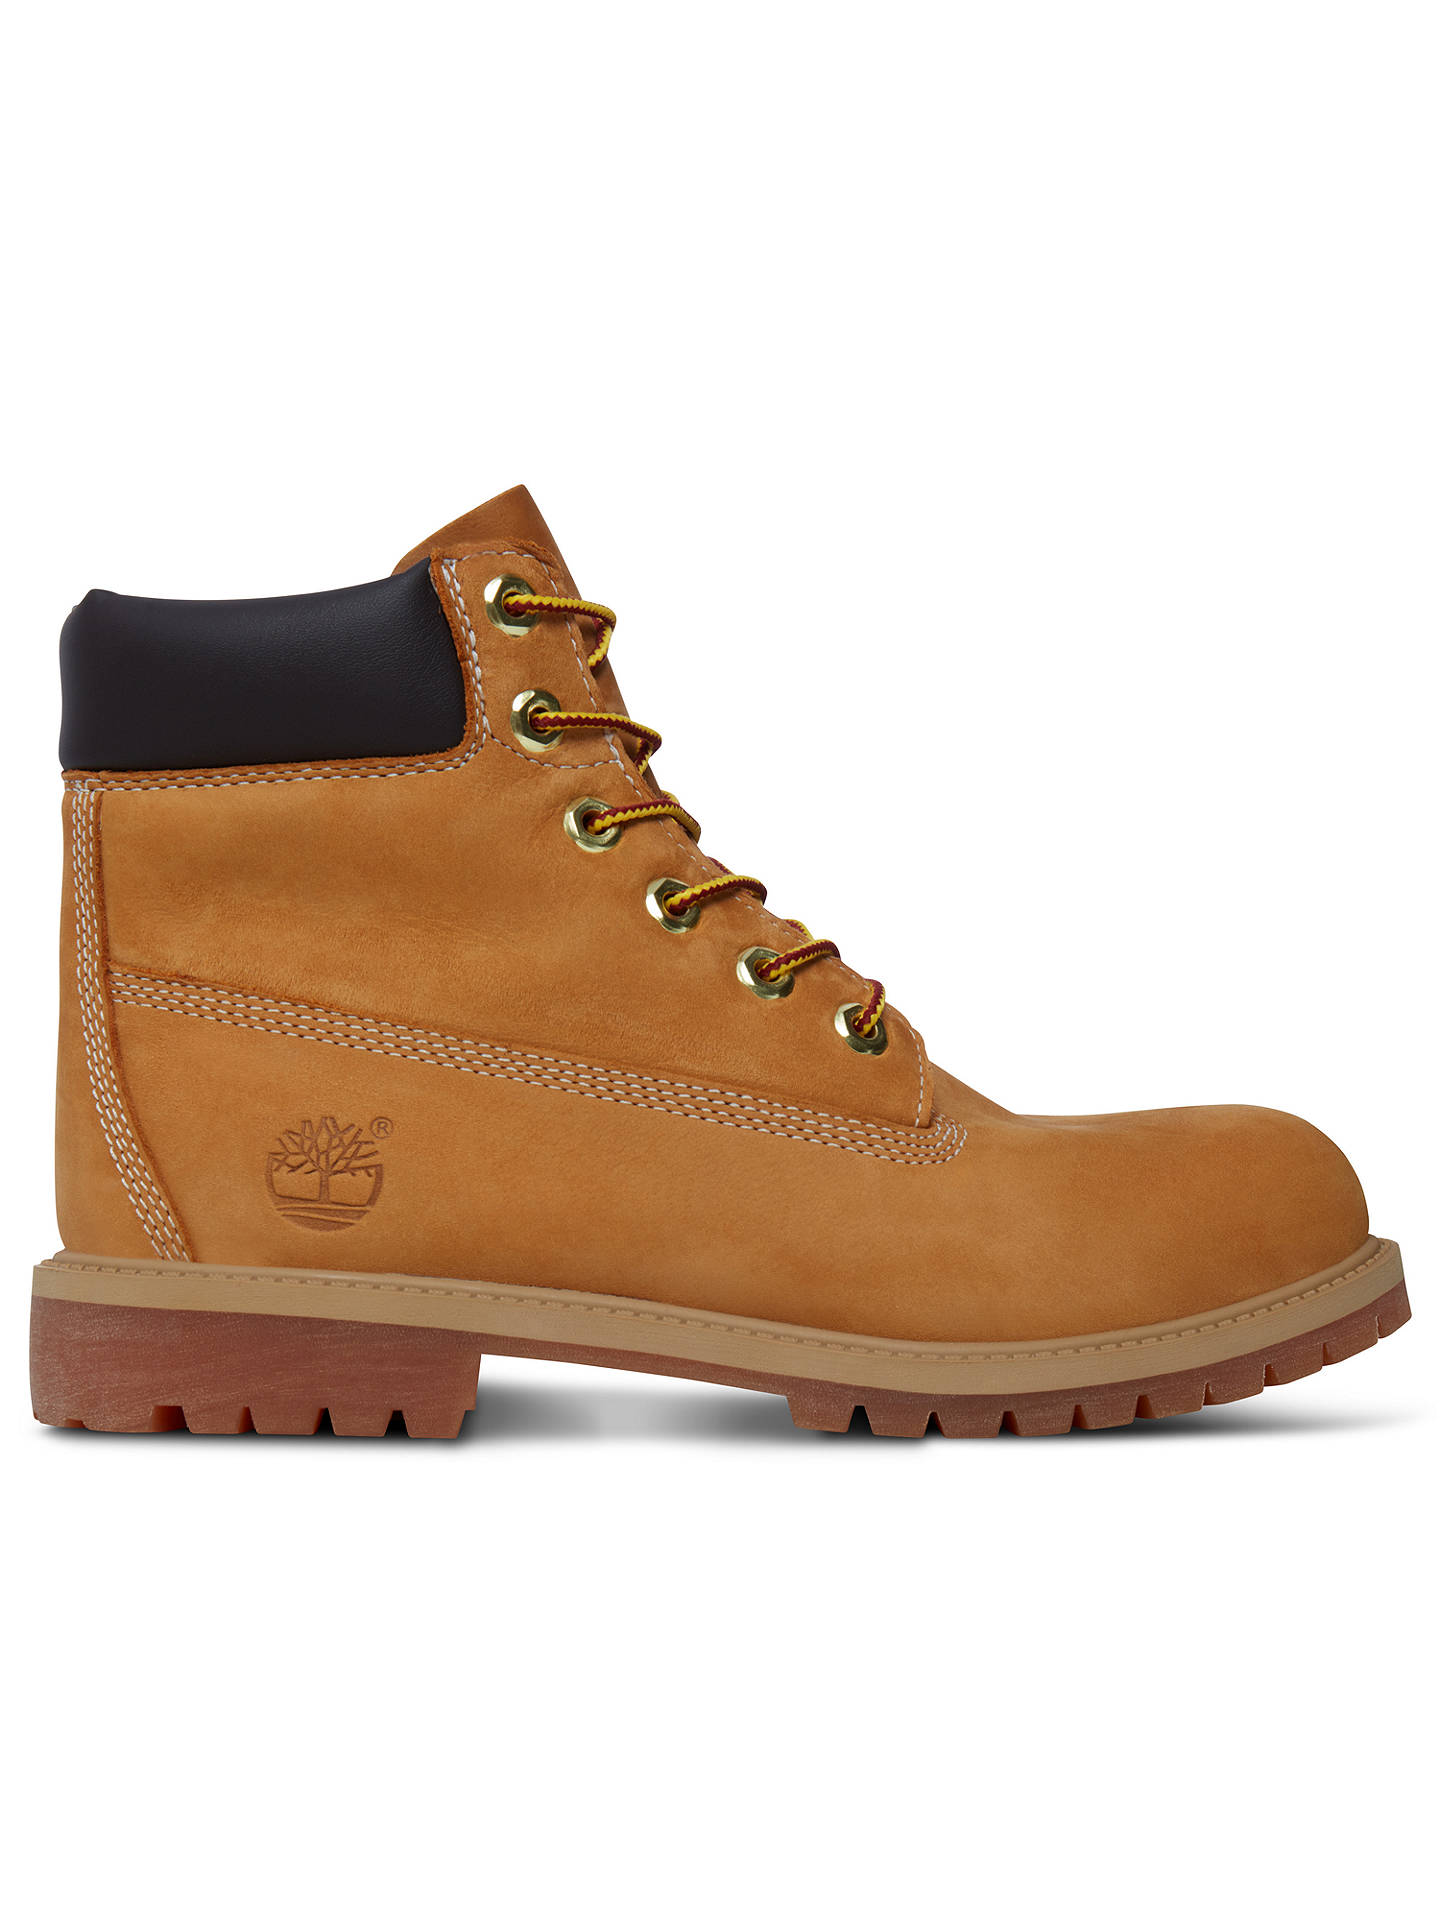 bdc9584b861816 ... Buy Timberland Children's Classic Boots, Wheat, 12 Jnr Online at  johnlewis. ...